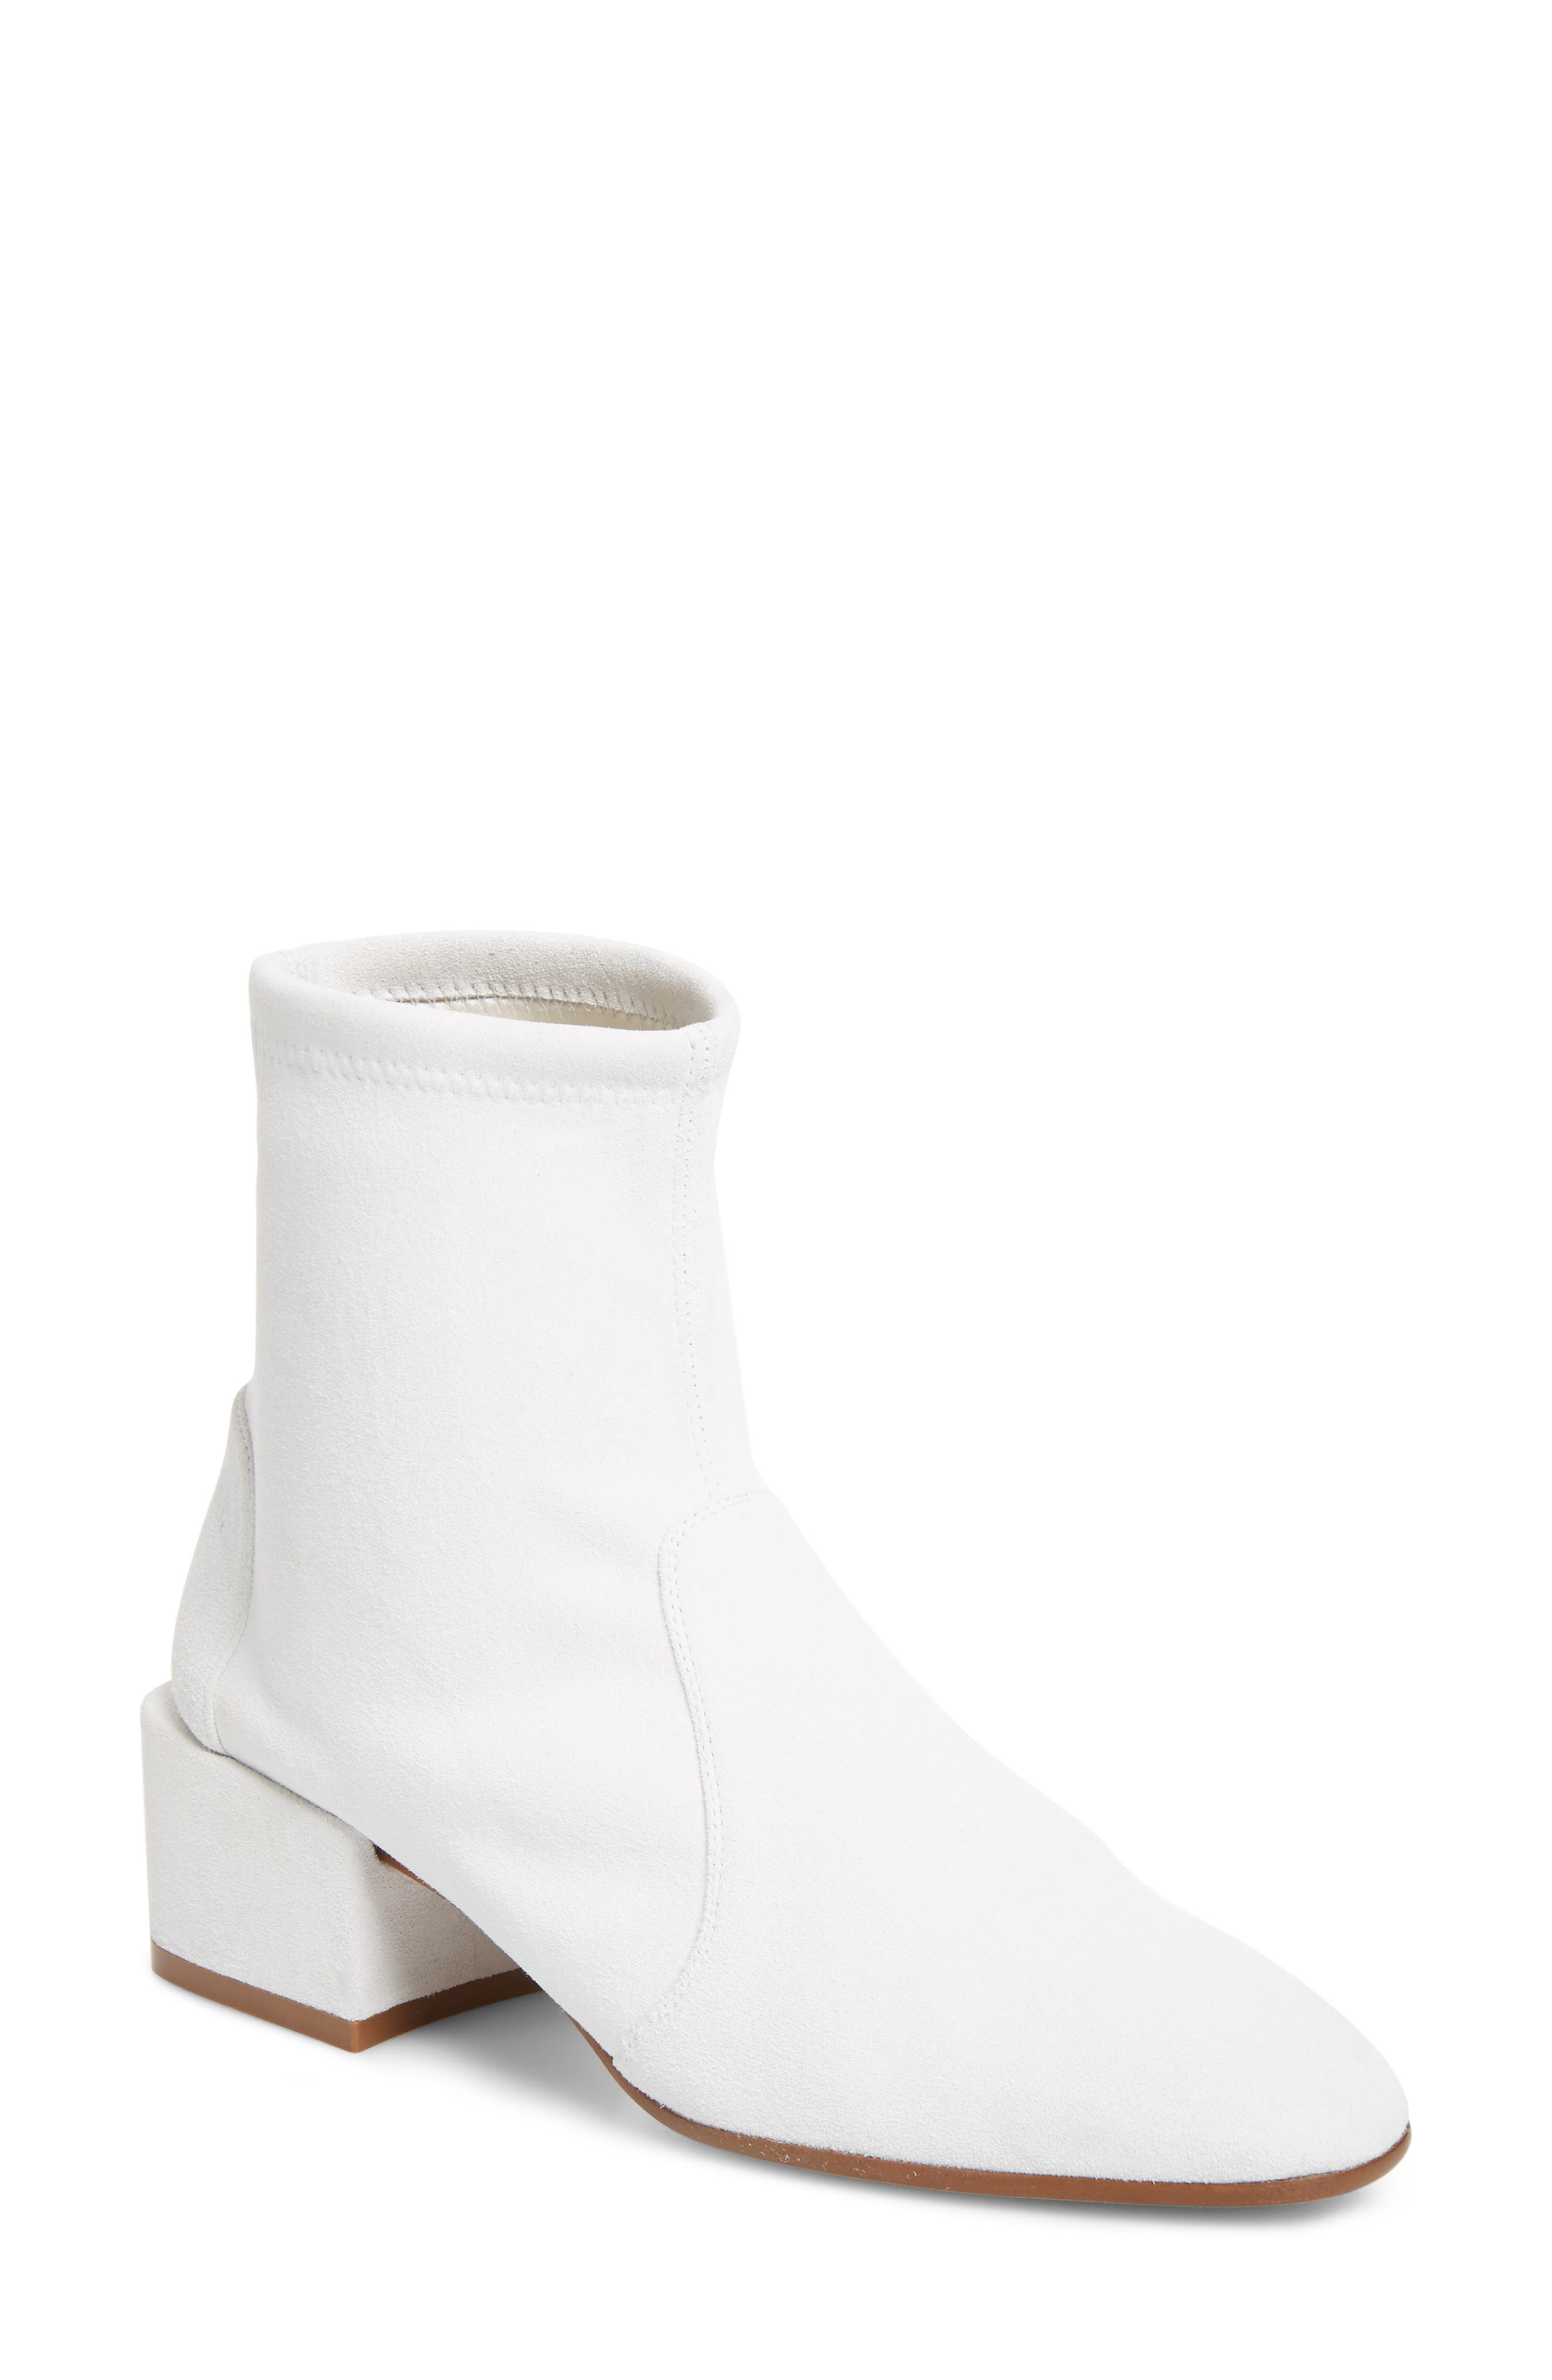 Accordion Bootie,                             Main thumbnail 1, color,                             Off White Seda Suede